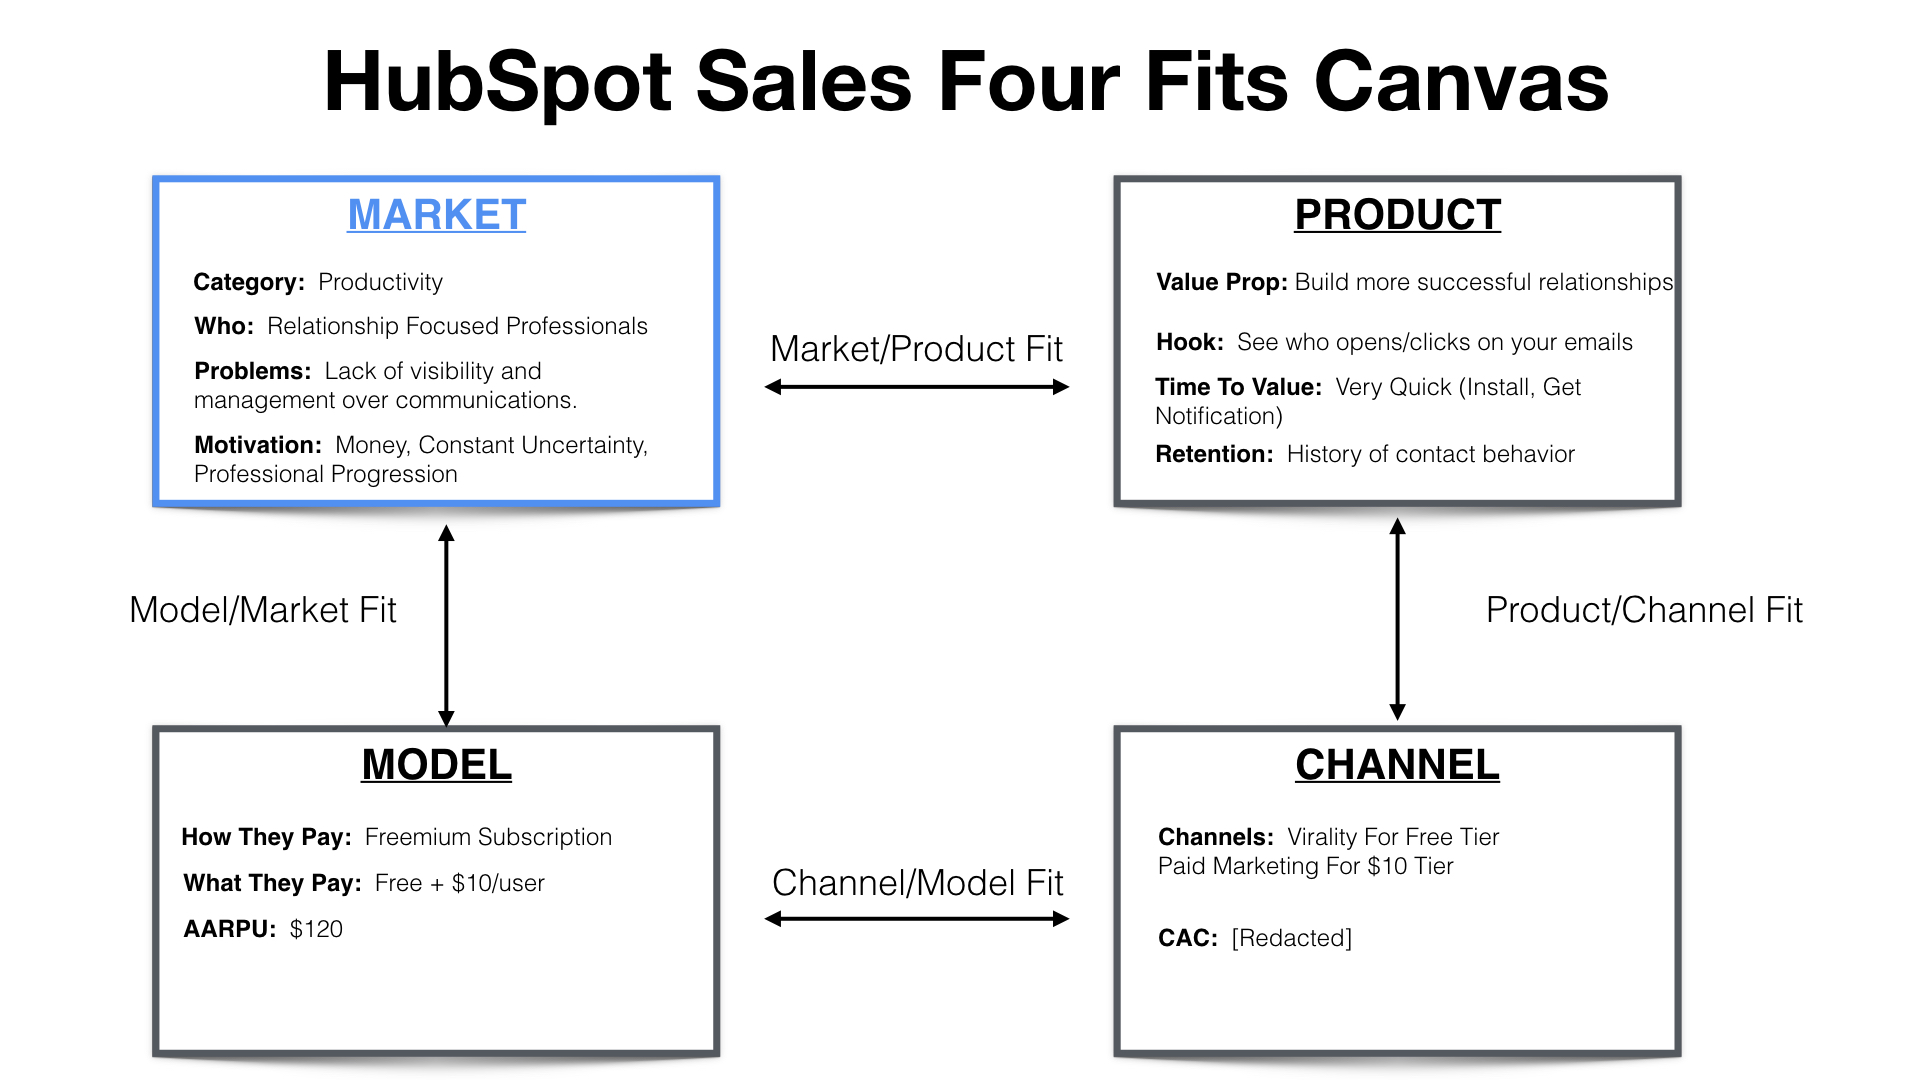 (7) Hubspot sales 4fits canvas.jpeg